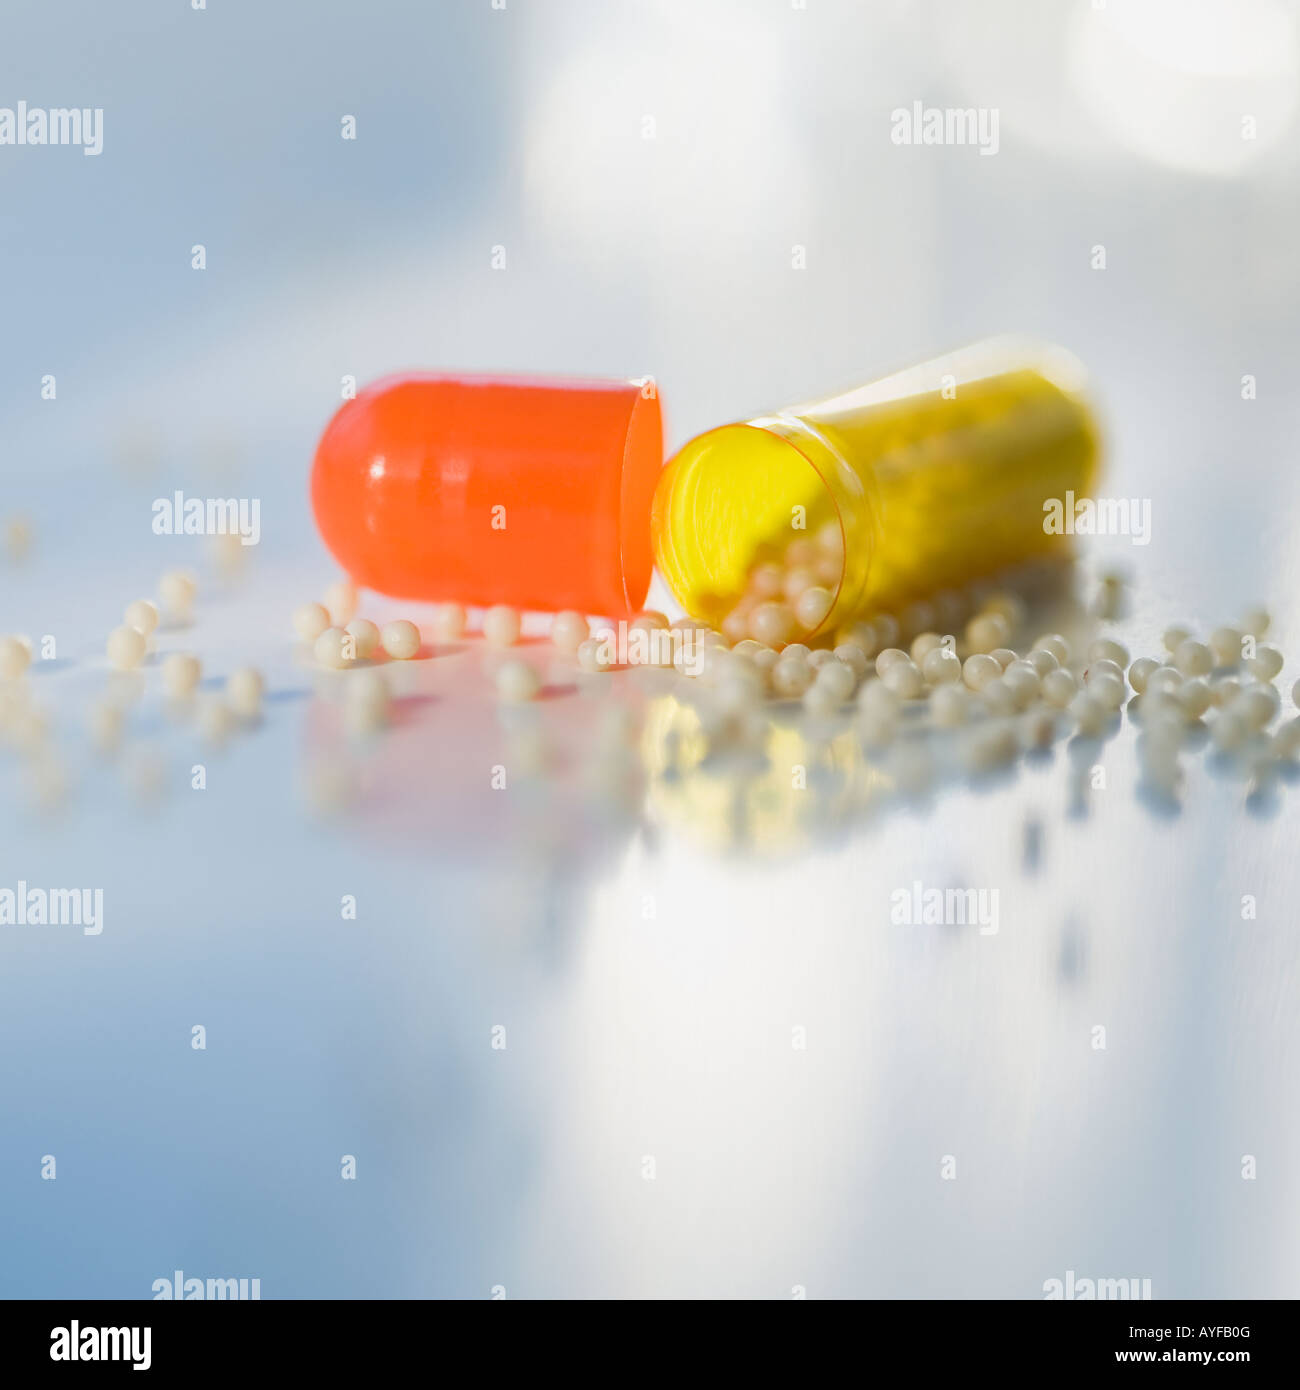 Close up of open medication capsule - Stock Image